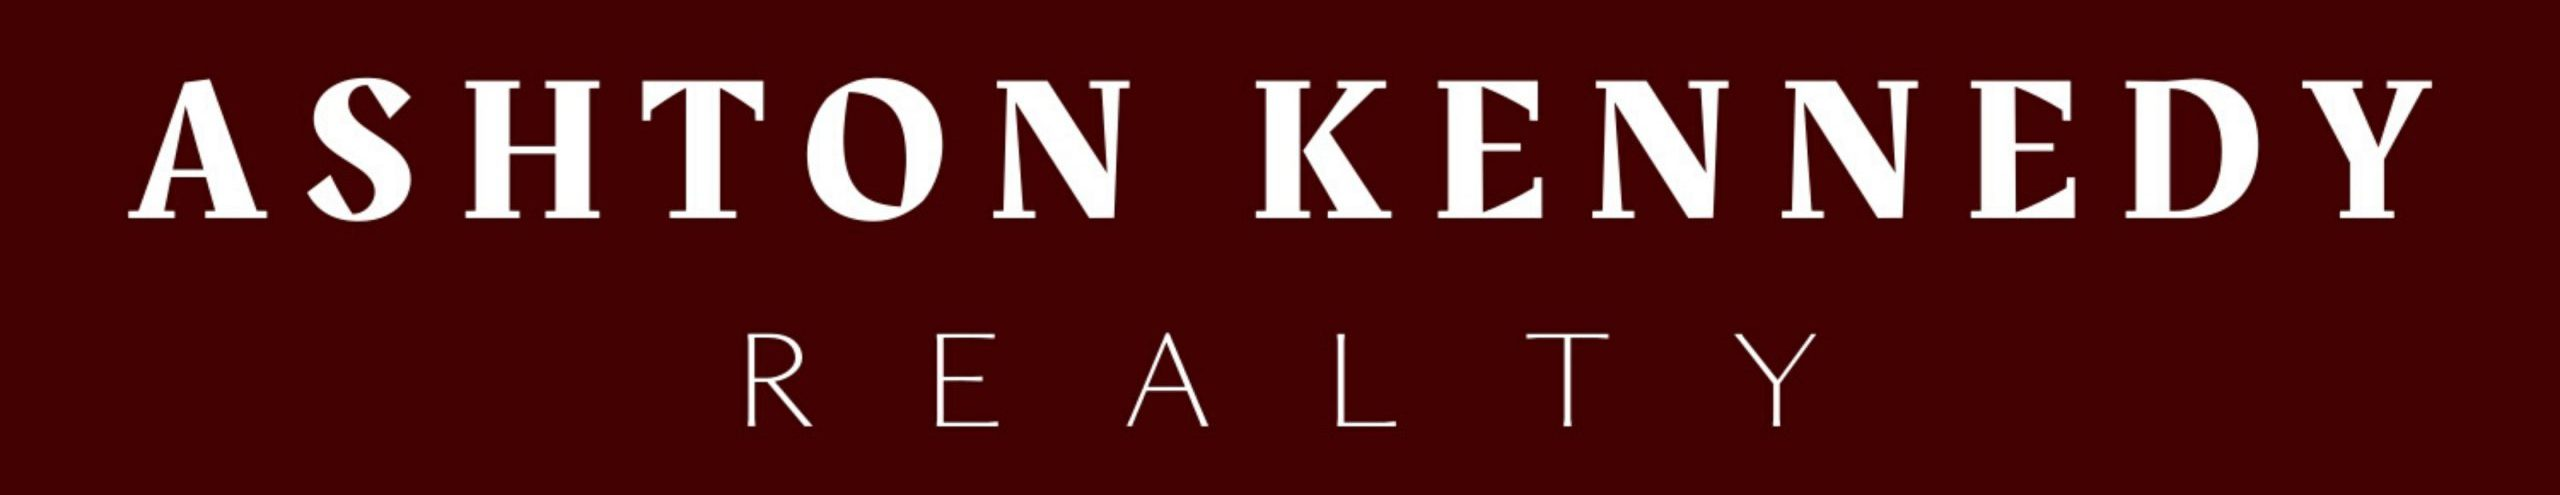 Ashton Kennedy Realty